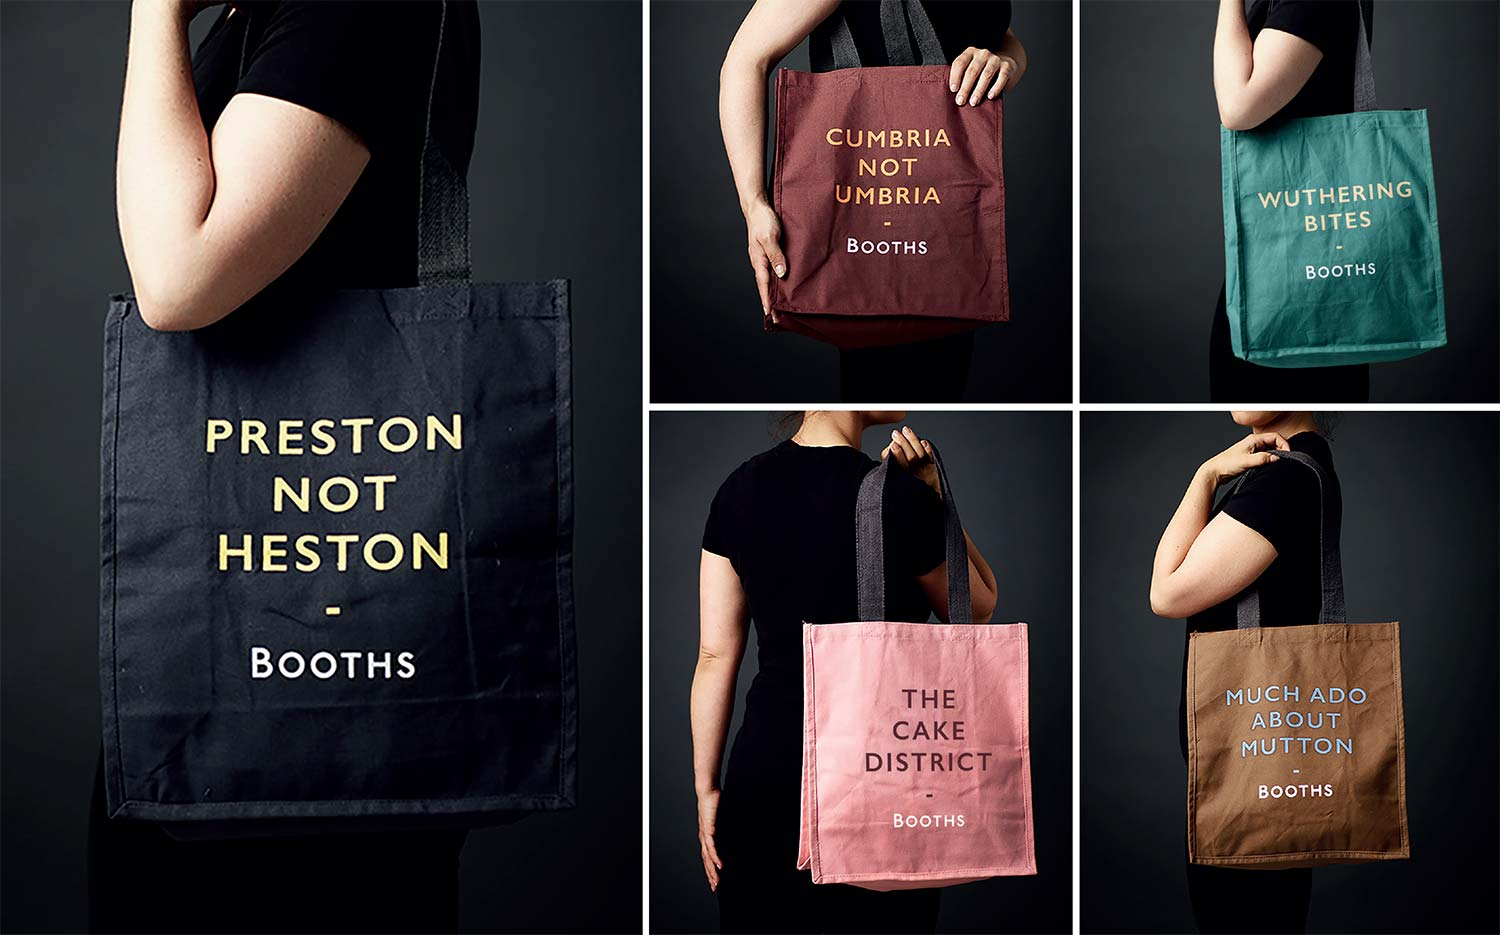 Booths shopping bags demonstrate design thinking + ideas